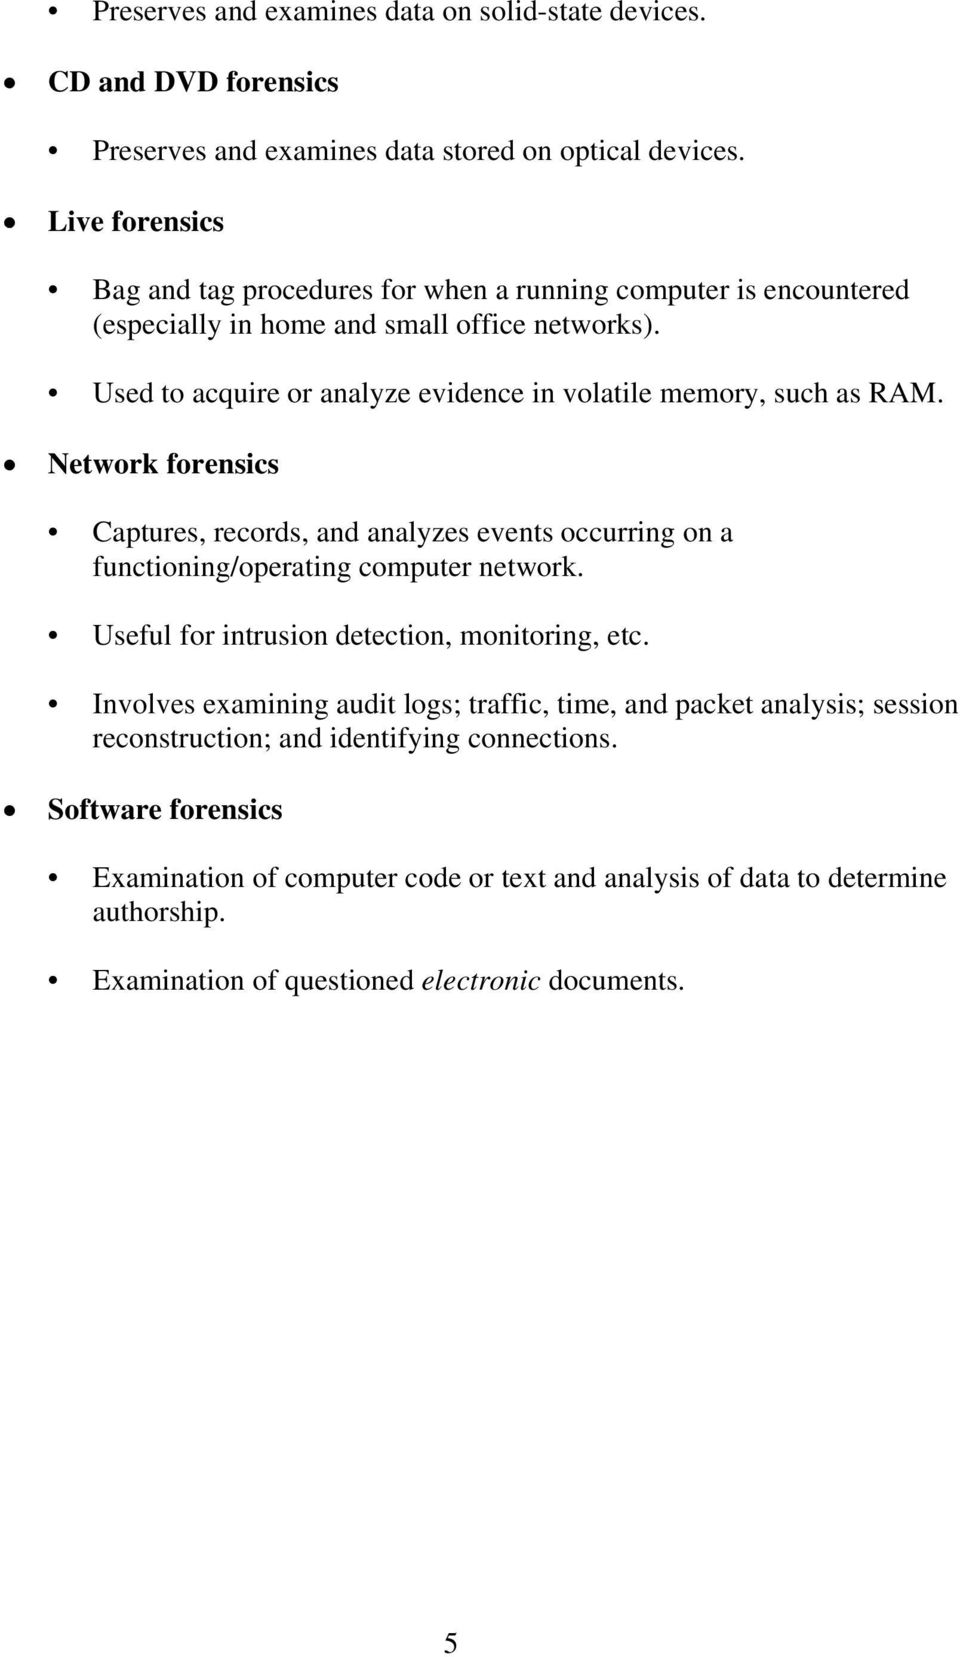 Used to acquire or analyze evidence in volatile memory, such as RAM. Network forensics Captures, records, and analyzes events occurring on a functioning/operating computer network.